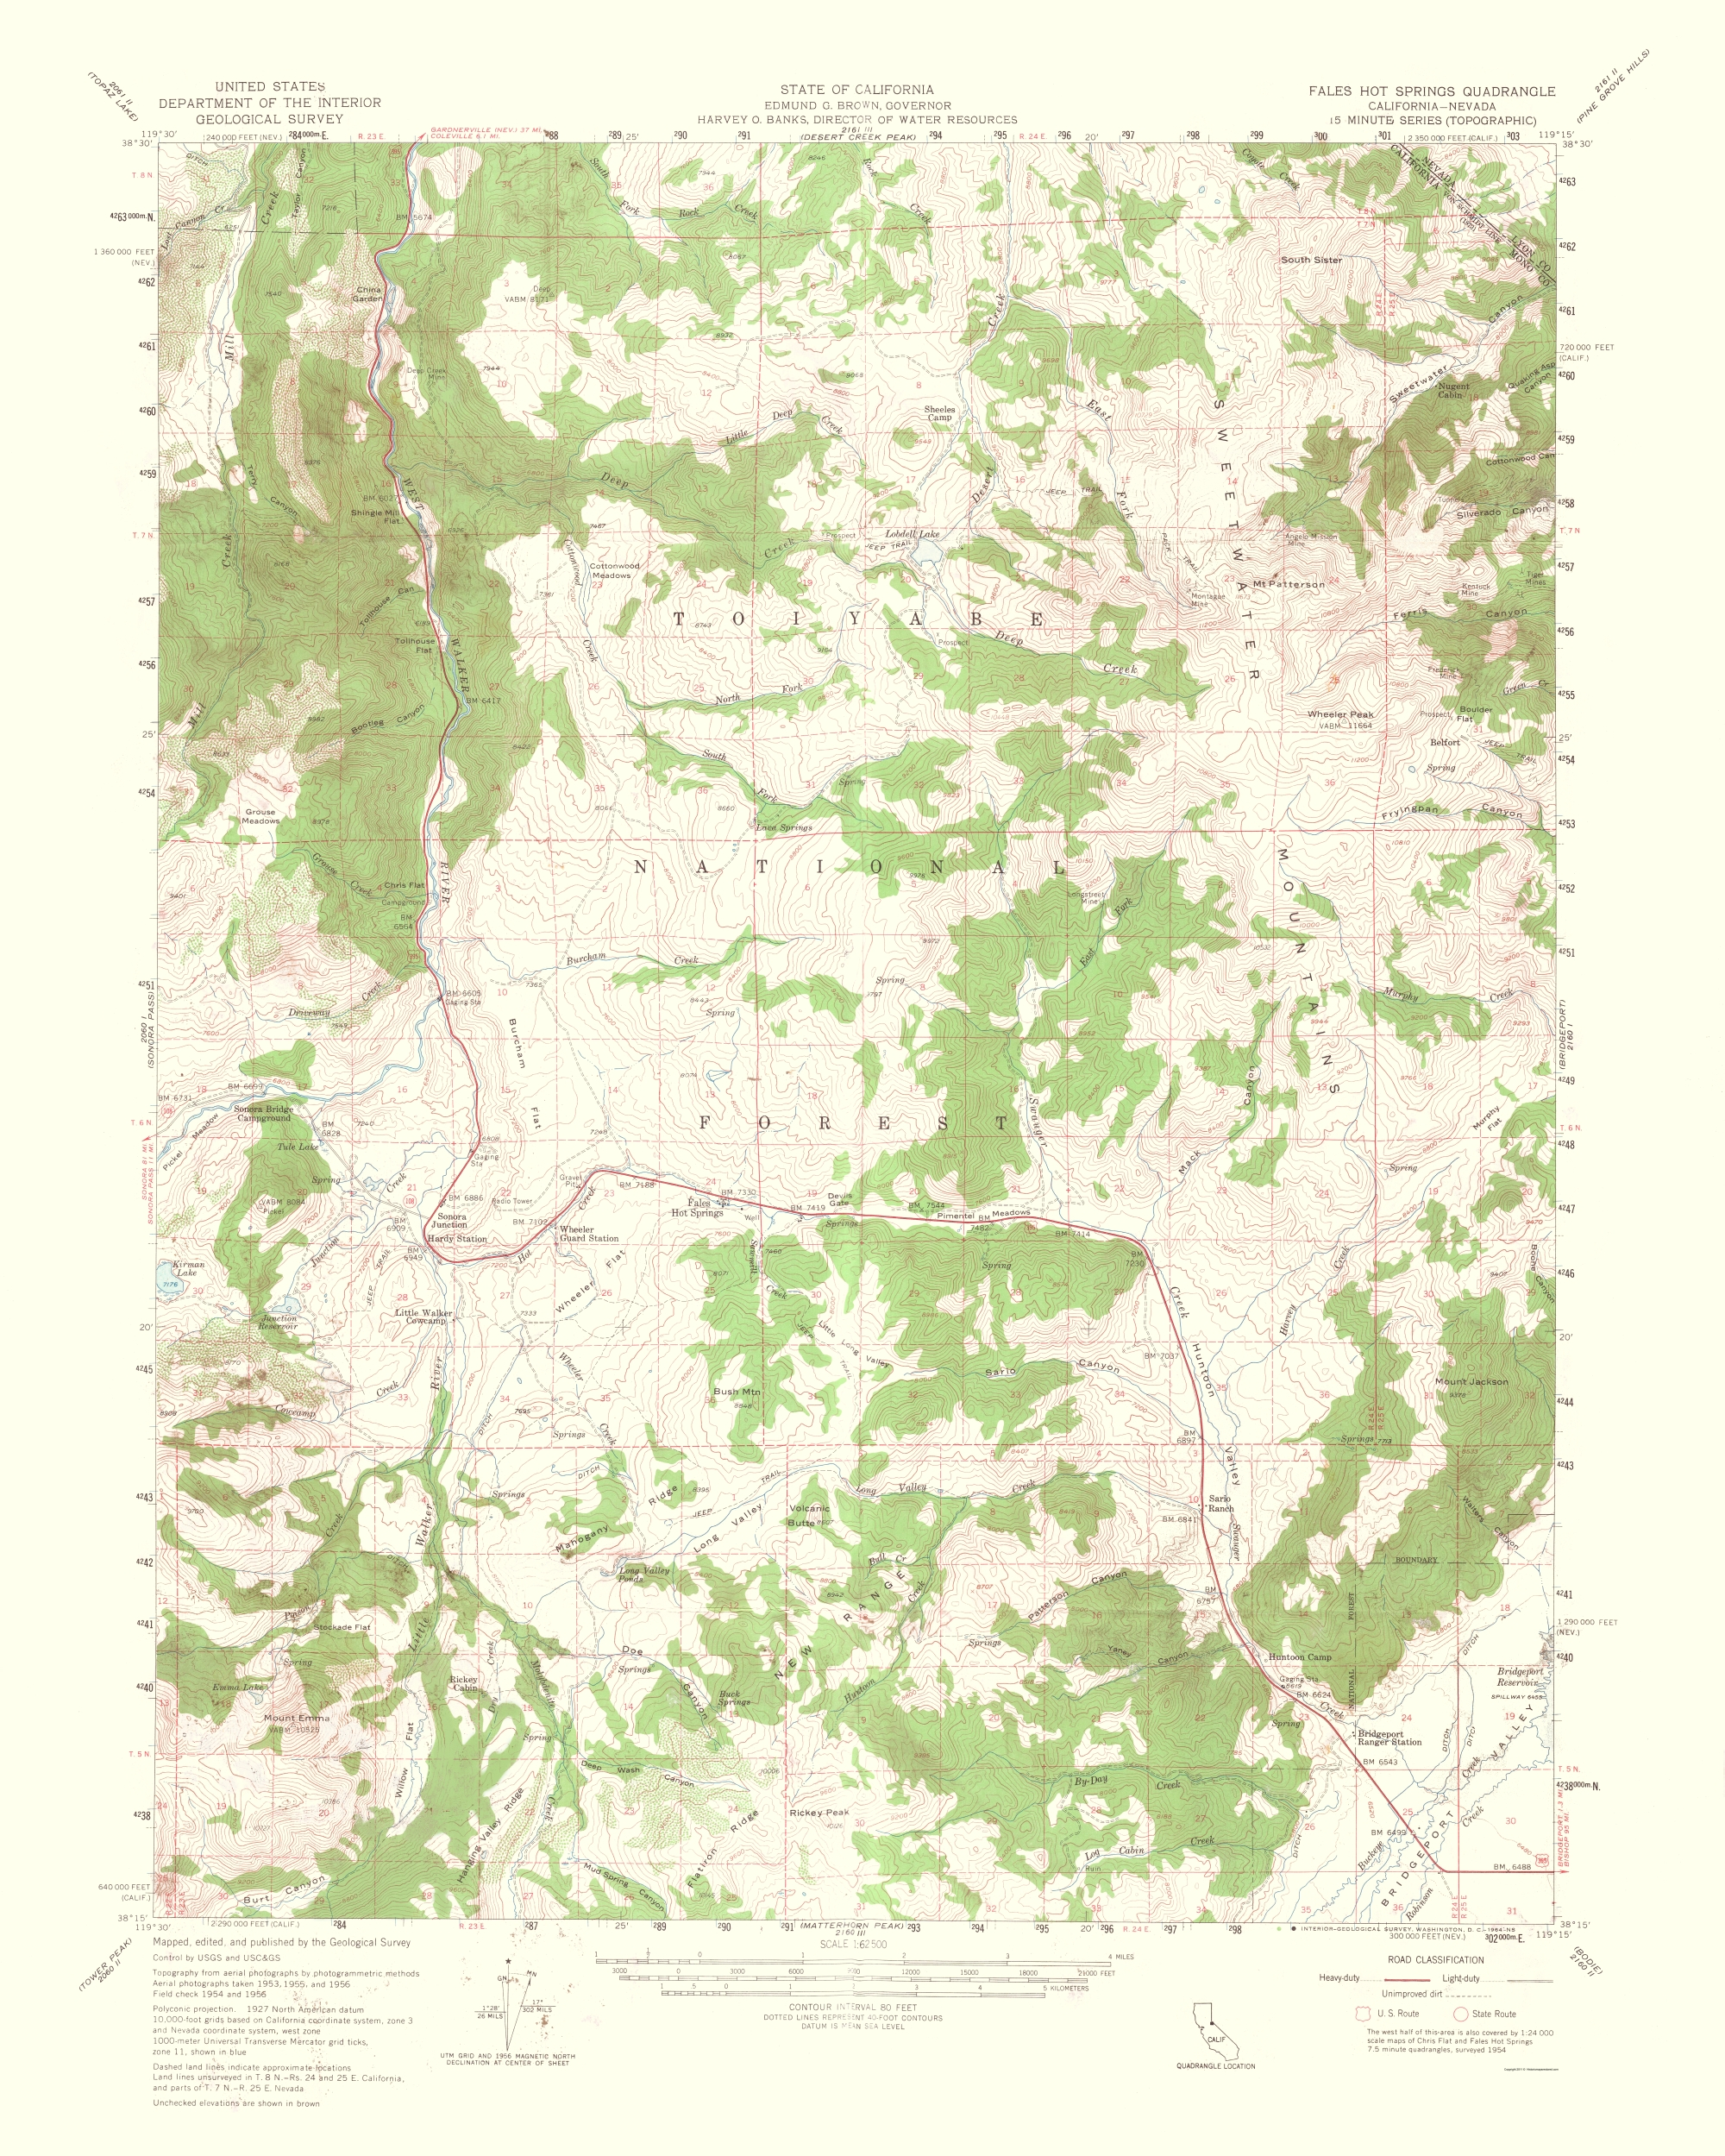 Old Topographical Map - Fales Hot Springs California 1964 on